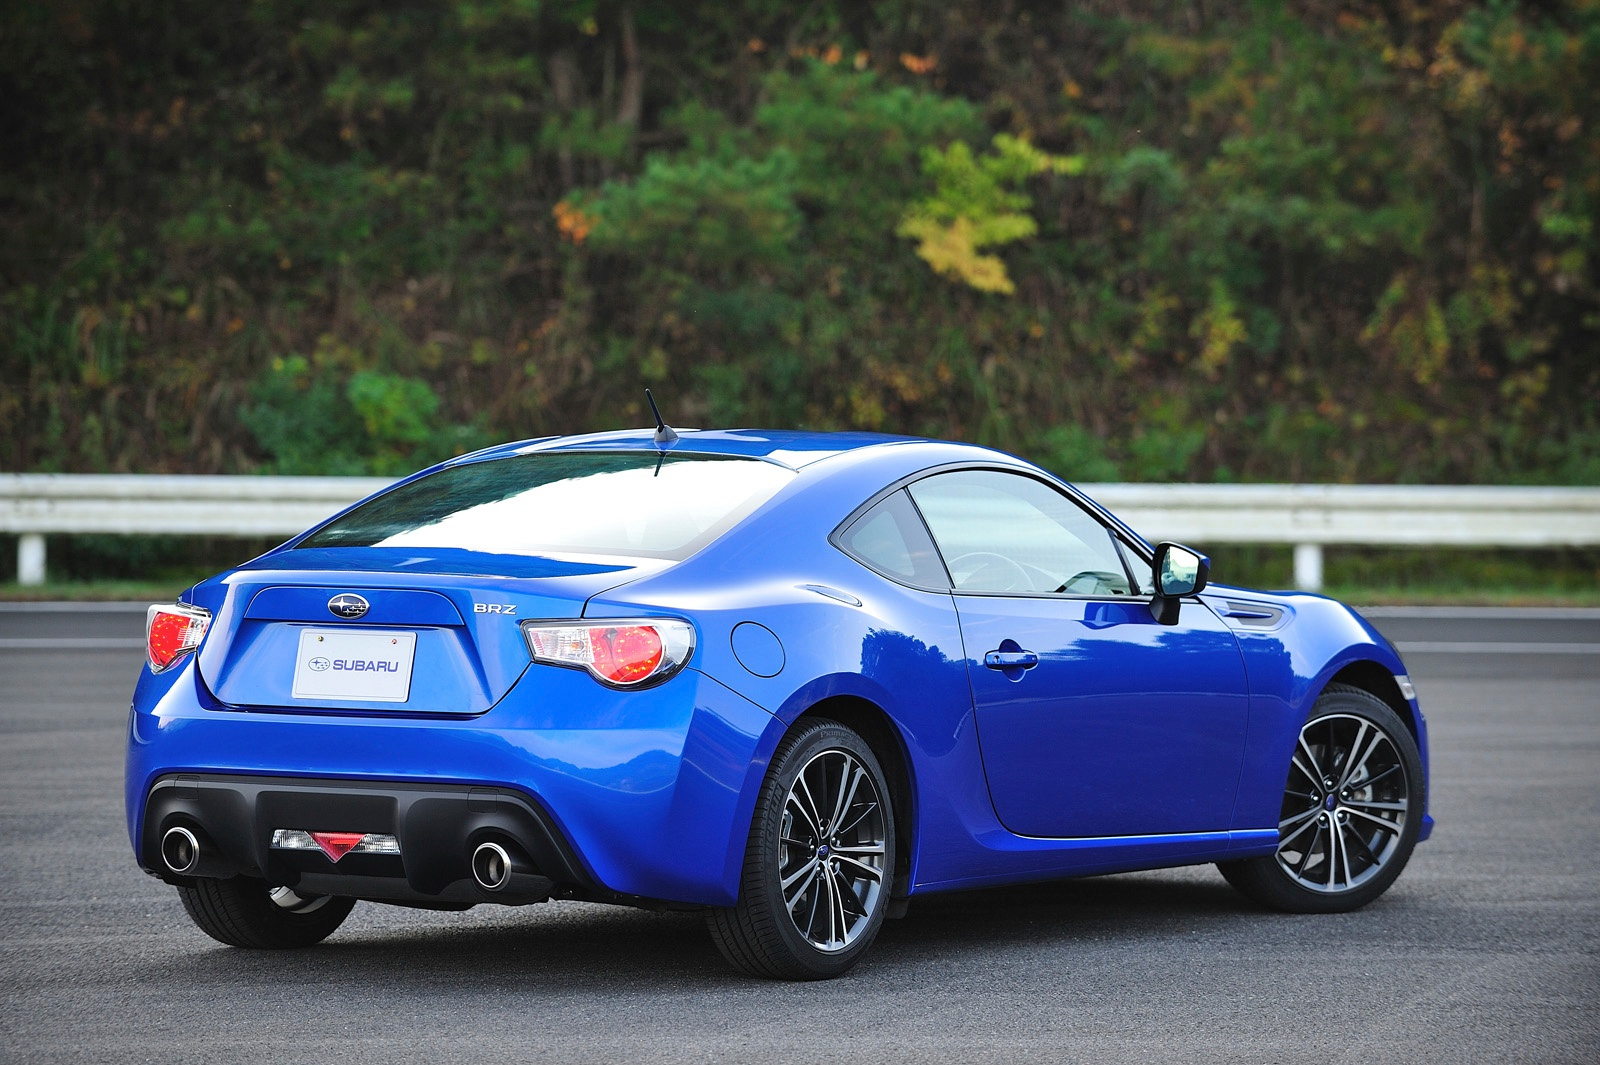 Subaru Is Back In The Game, After Being On The Sideline For Over Two  Decades With A Spanking Brand New, Stylish Two Door 2+2 Coupe, The BRZ.